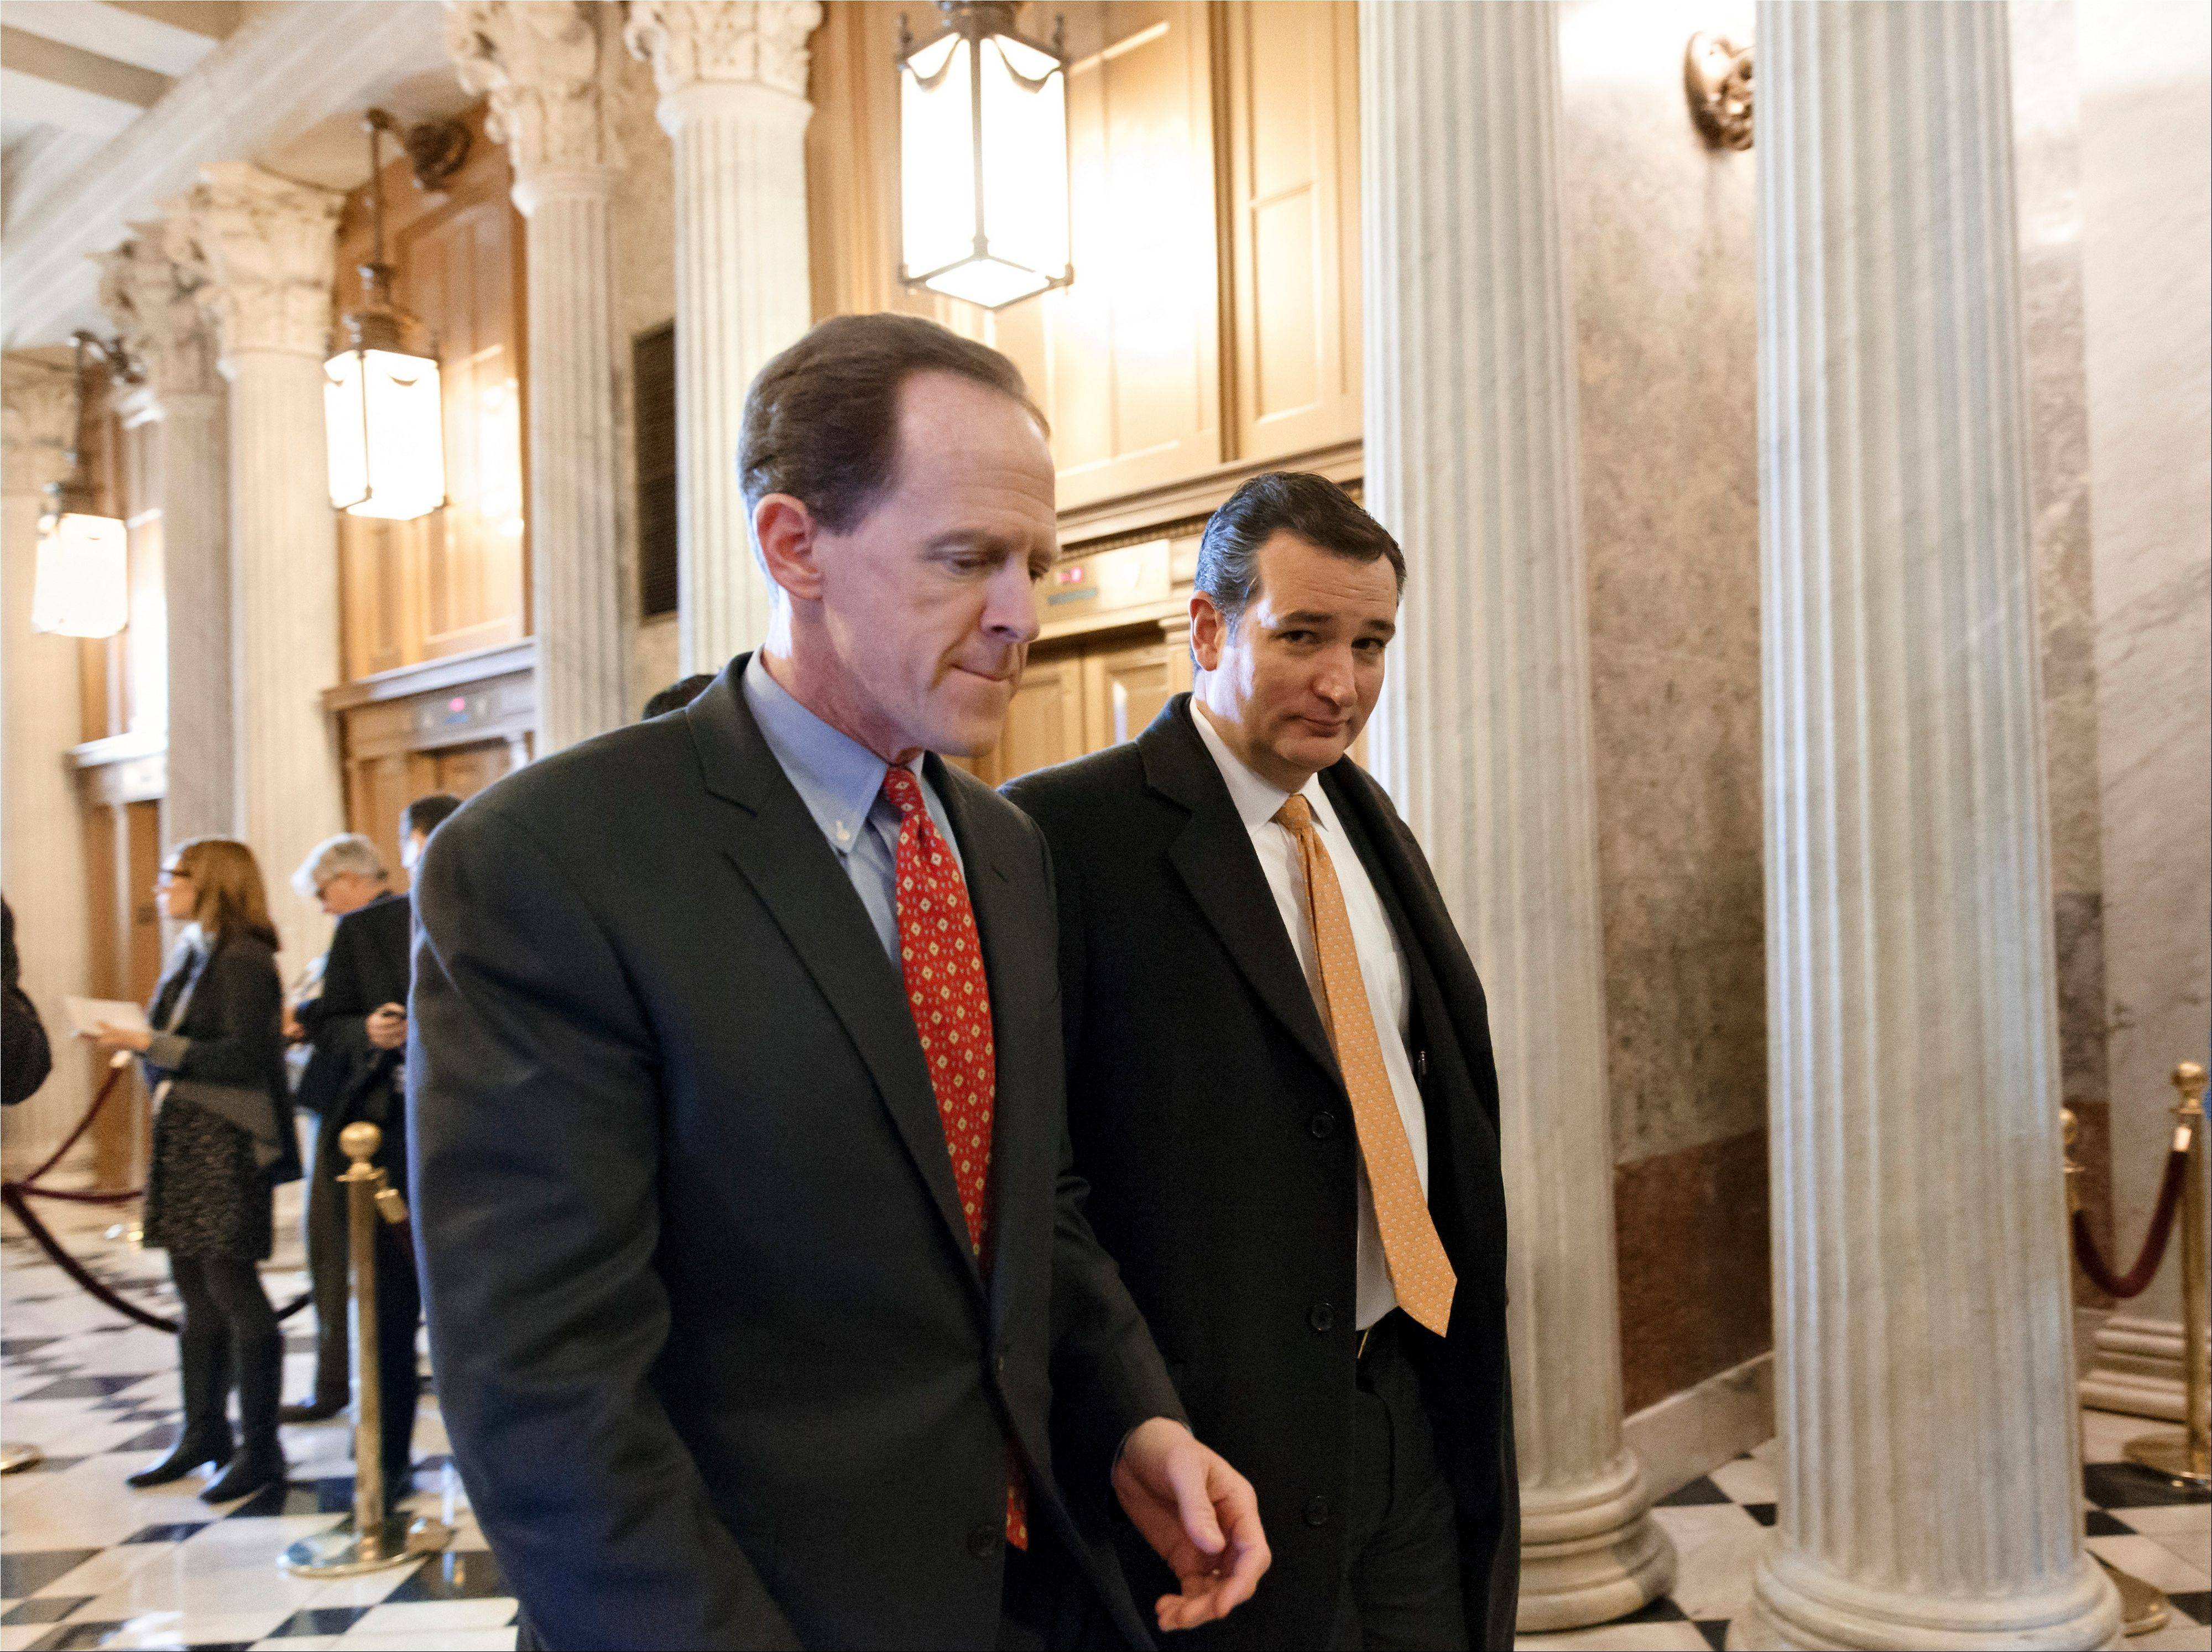 Sen. Pat Toomey, R-Pa., left, and Sen. Ted Cruz, R-Texas, right, arrive at the Senate on Capitol Hill in Washington, Tuesday for a procedural vote on legislation to renew jobless benefits for the long-term unemployed. The vote was 60-37 to limit debate on the legislation, with a half-dozen Republicans siding with the Democrats on the test vote.